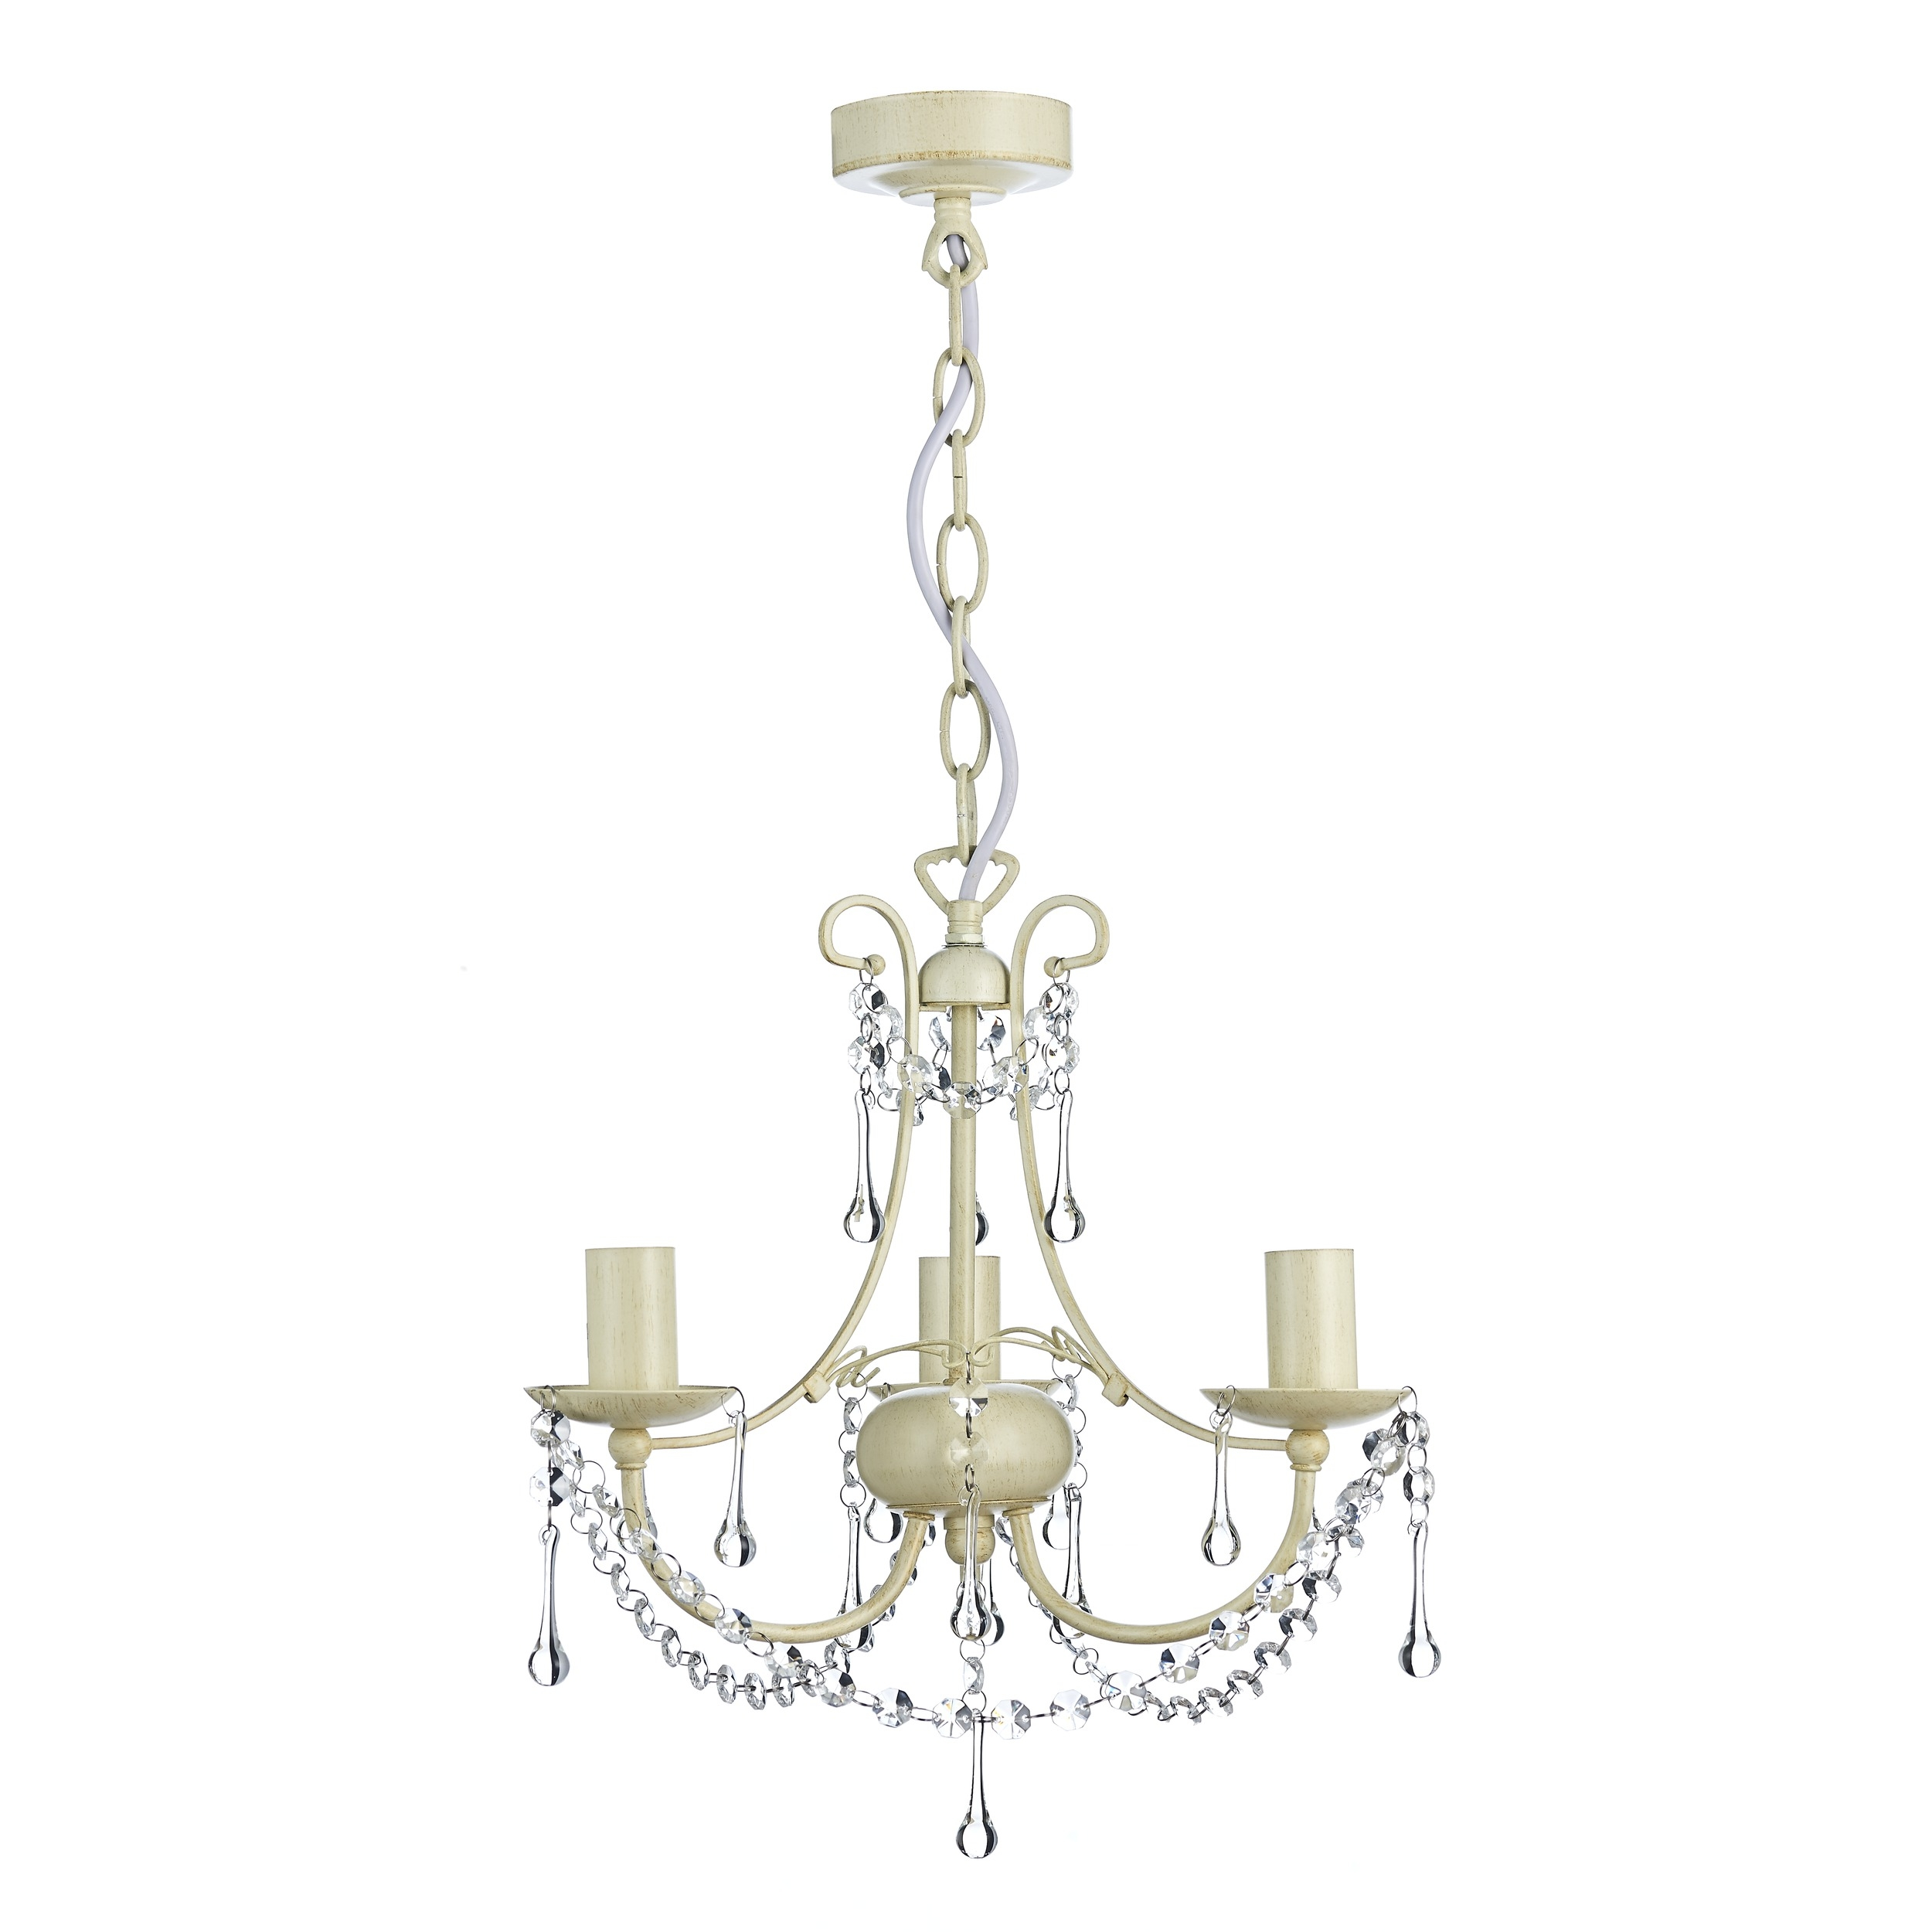 12 ideas of cream chandelier lights - Can light chandelier ...